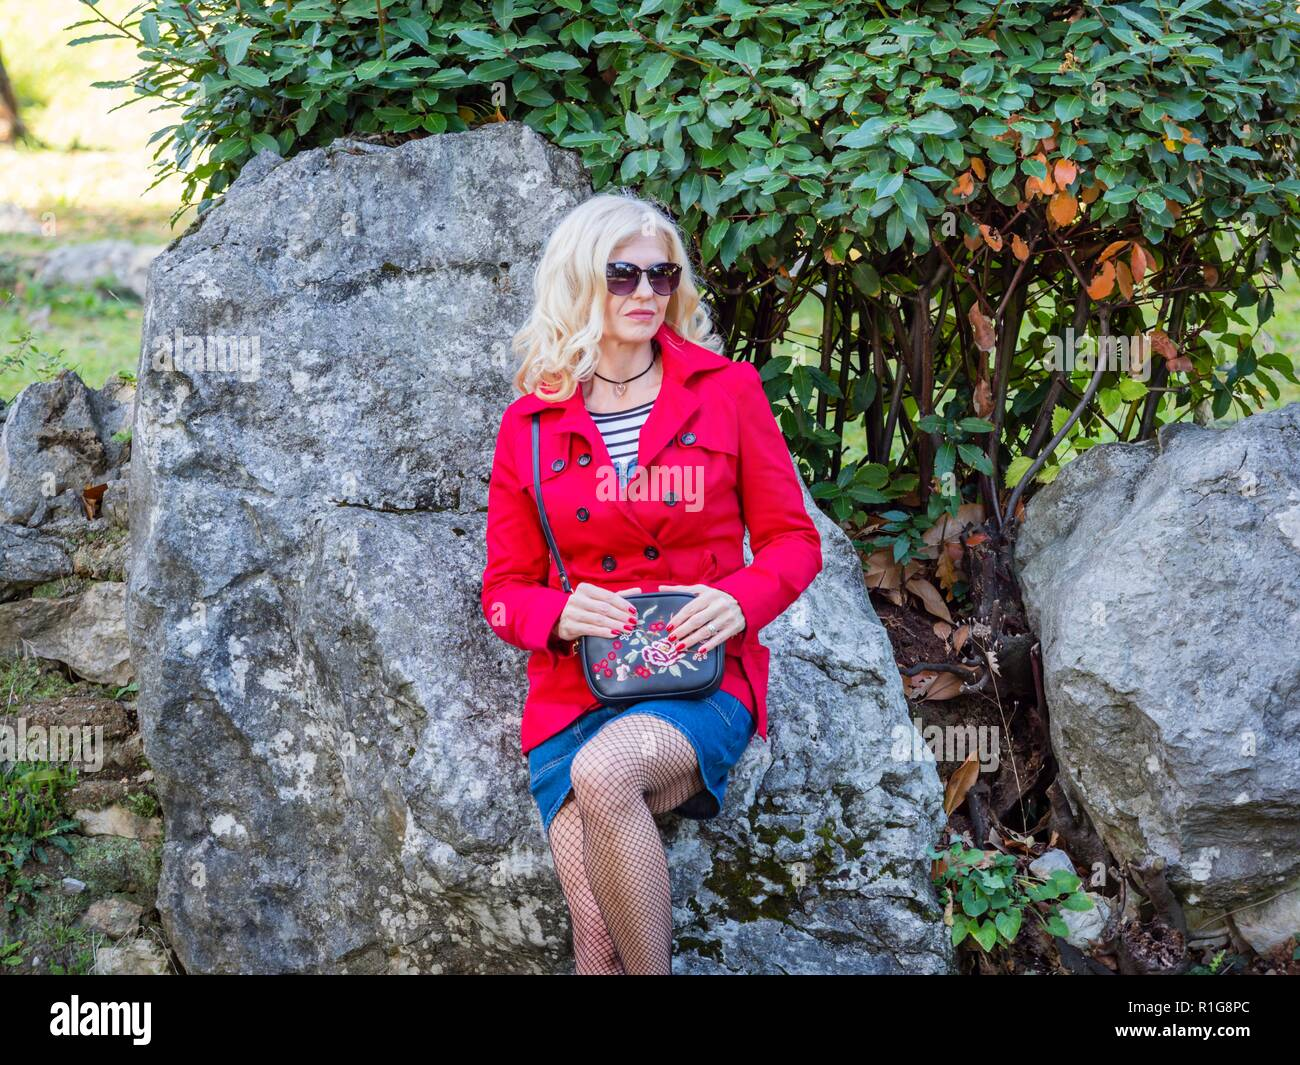 Attractive senior woman 40-45 years caucasian appearance blonde hair wearing sunglasses looking at camera - Stock Image